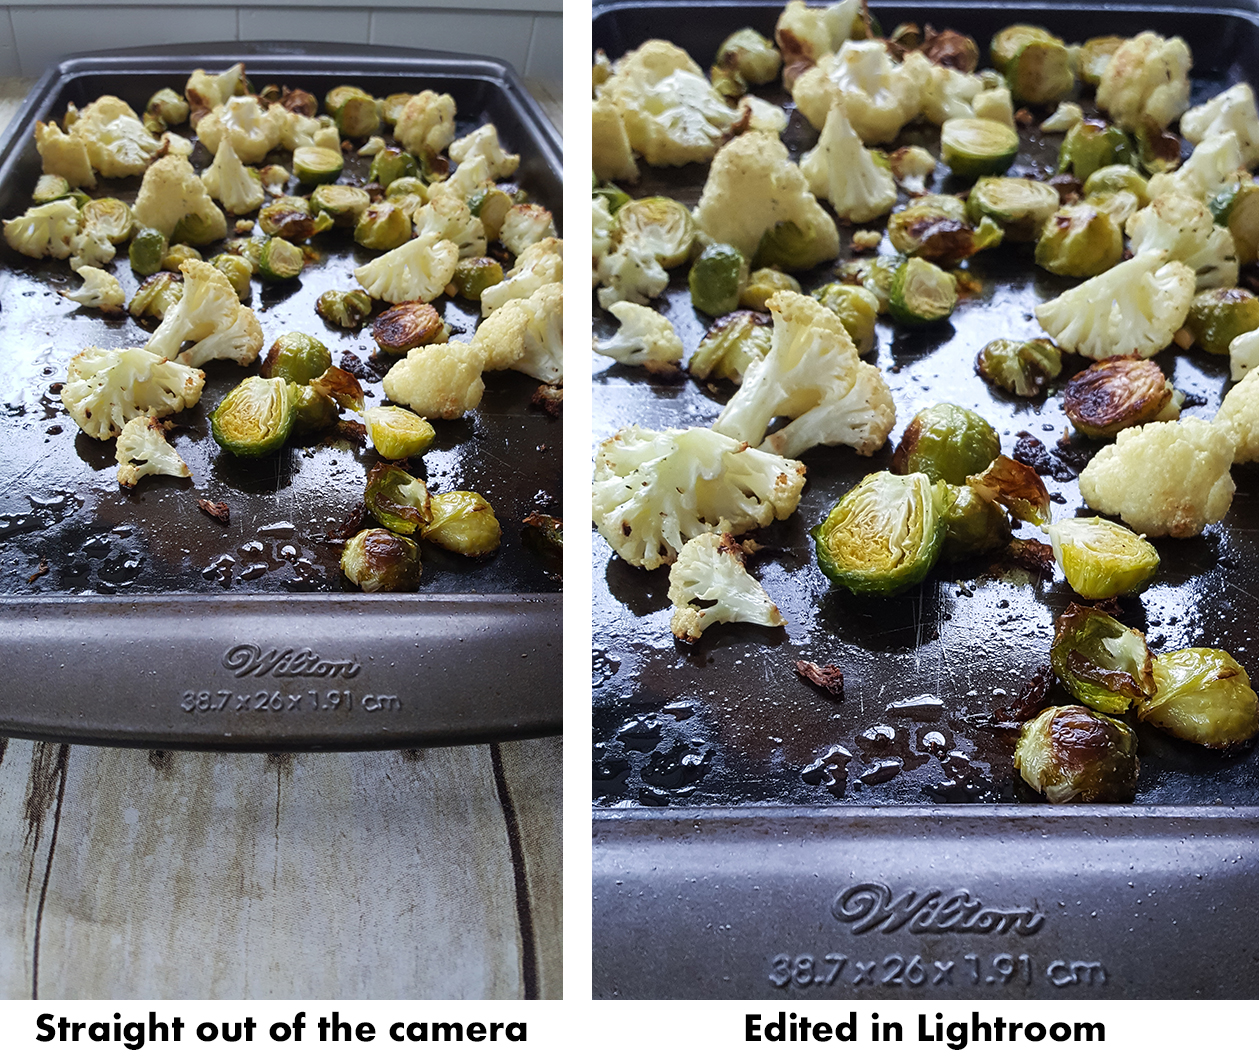 How to Take Better Photos for Your Blog With Your Phone - Smartphone Unedited Vs Edited Pictures | http://www.roseclearfield.com